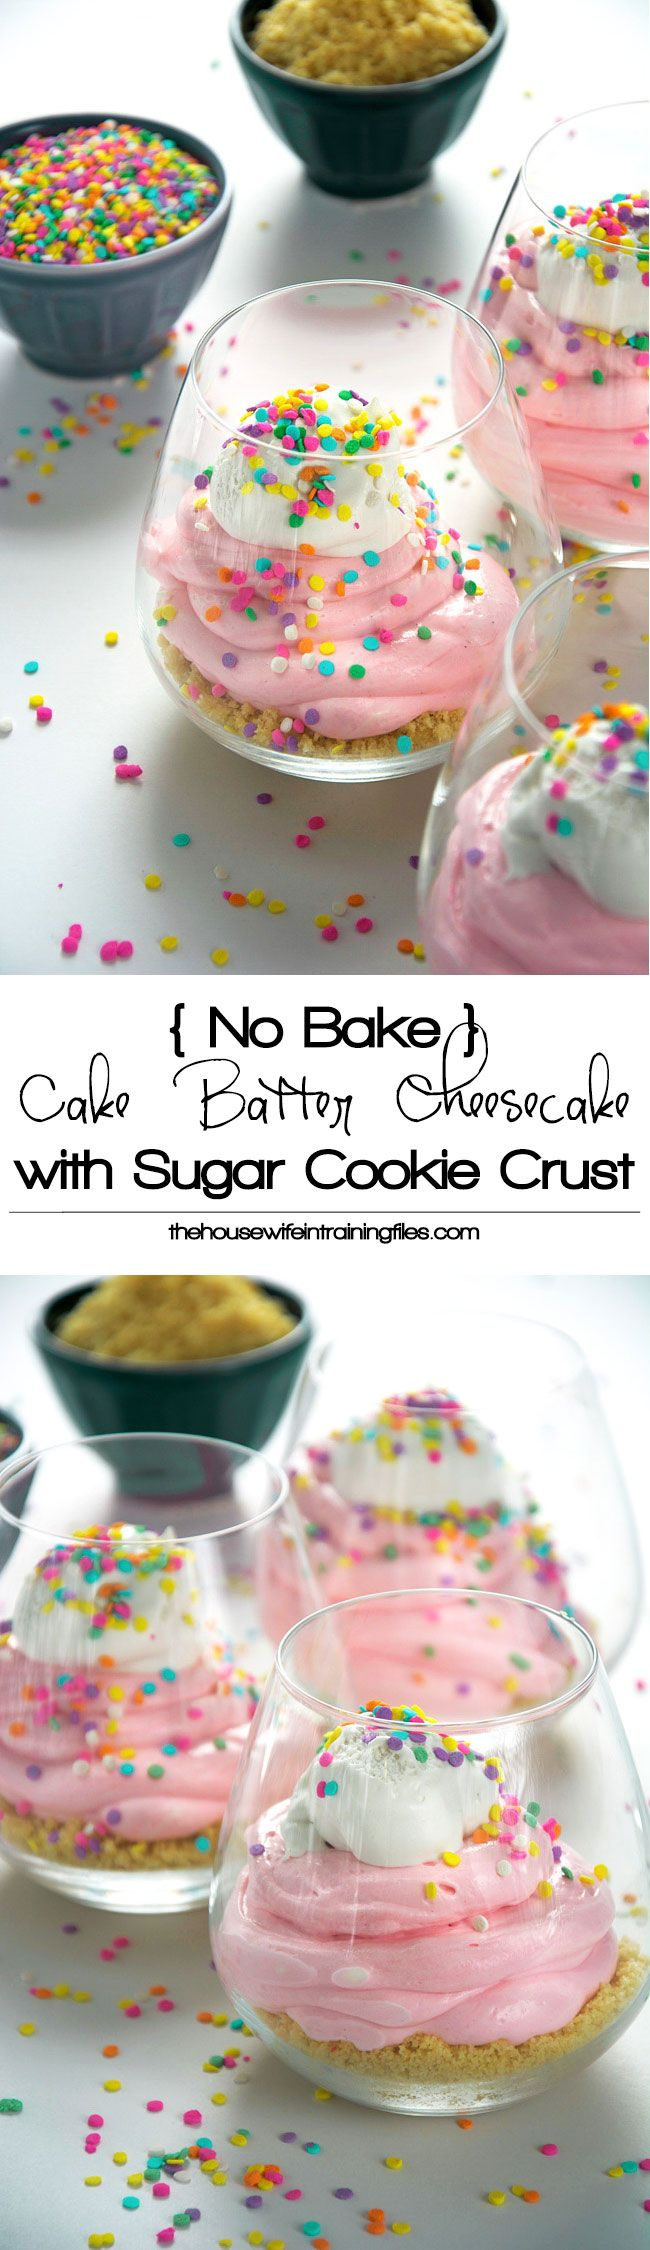 No Bake Cake Batter Cheesecake with Sugar Cookie Crust